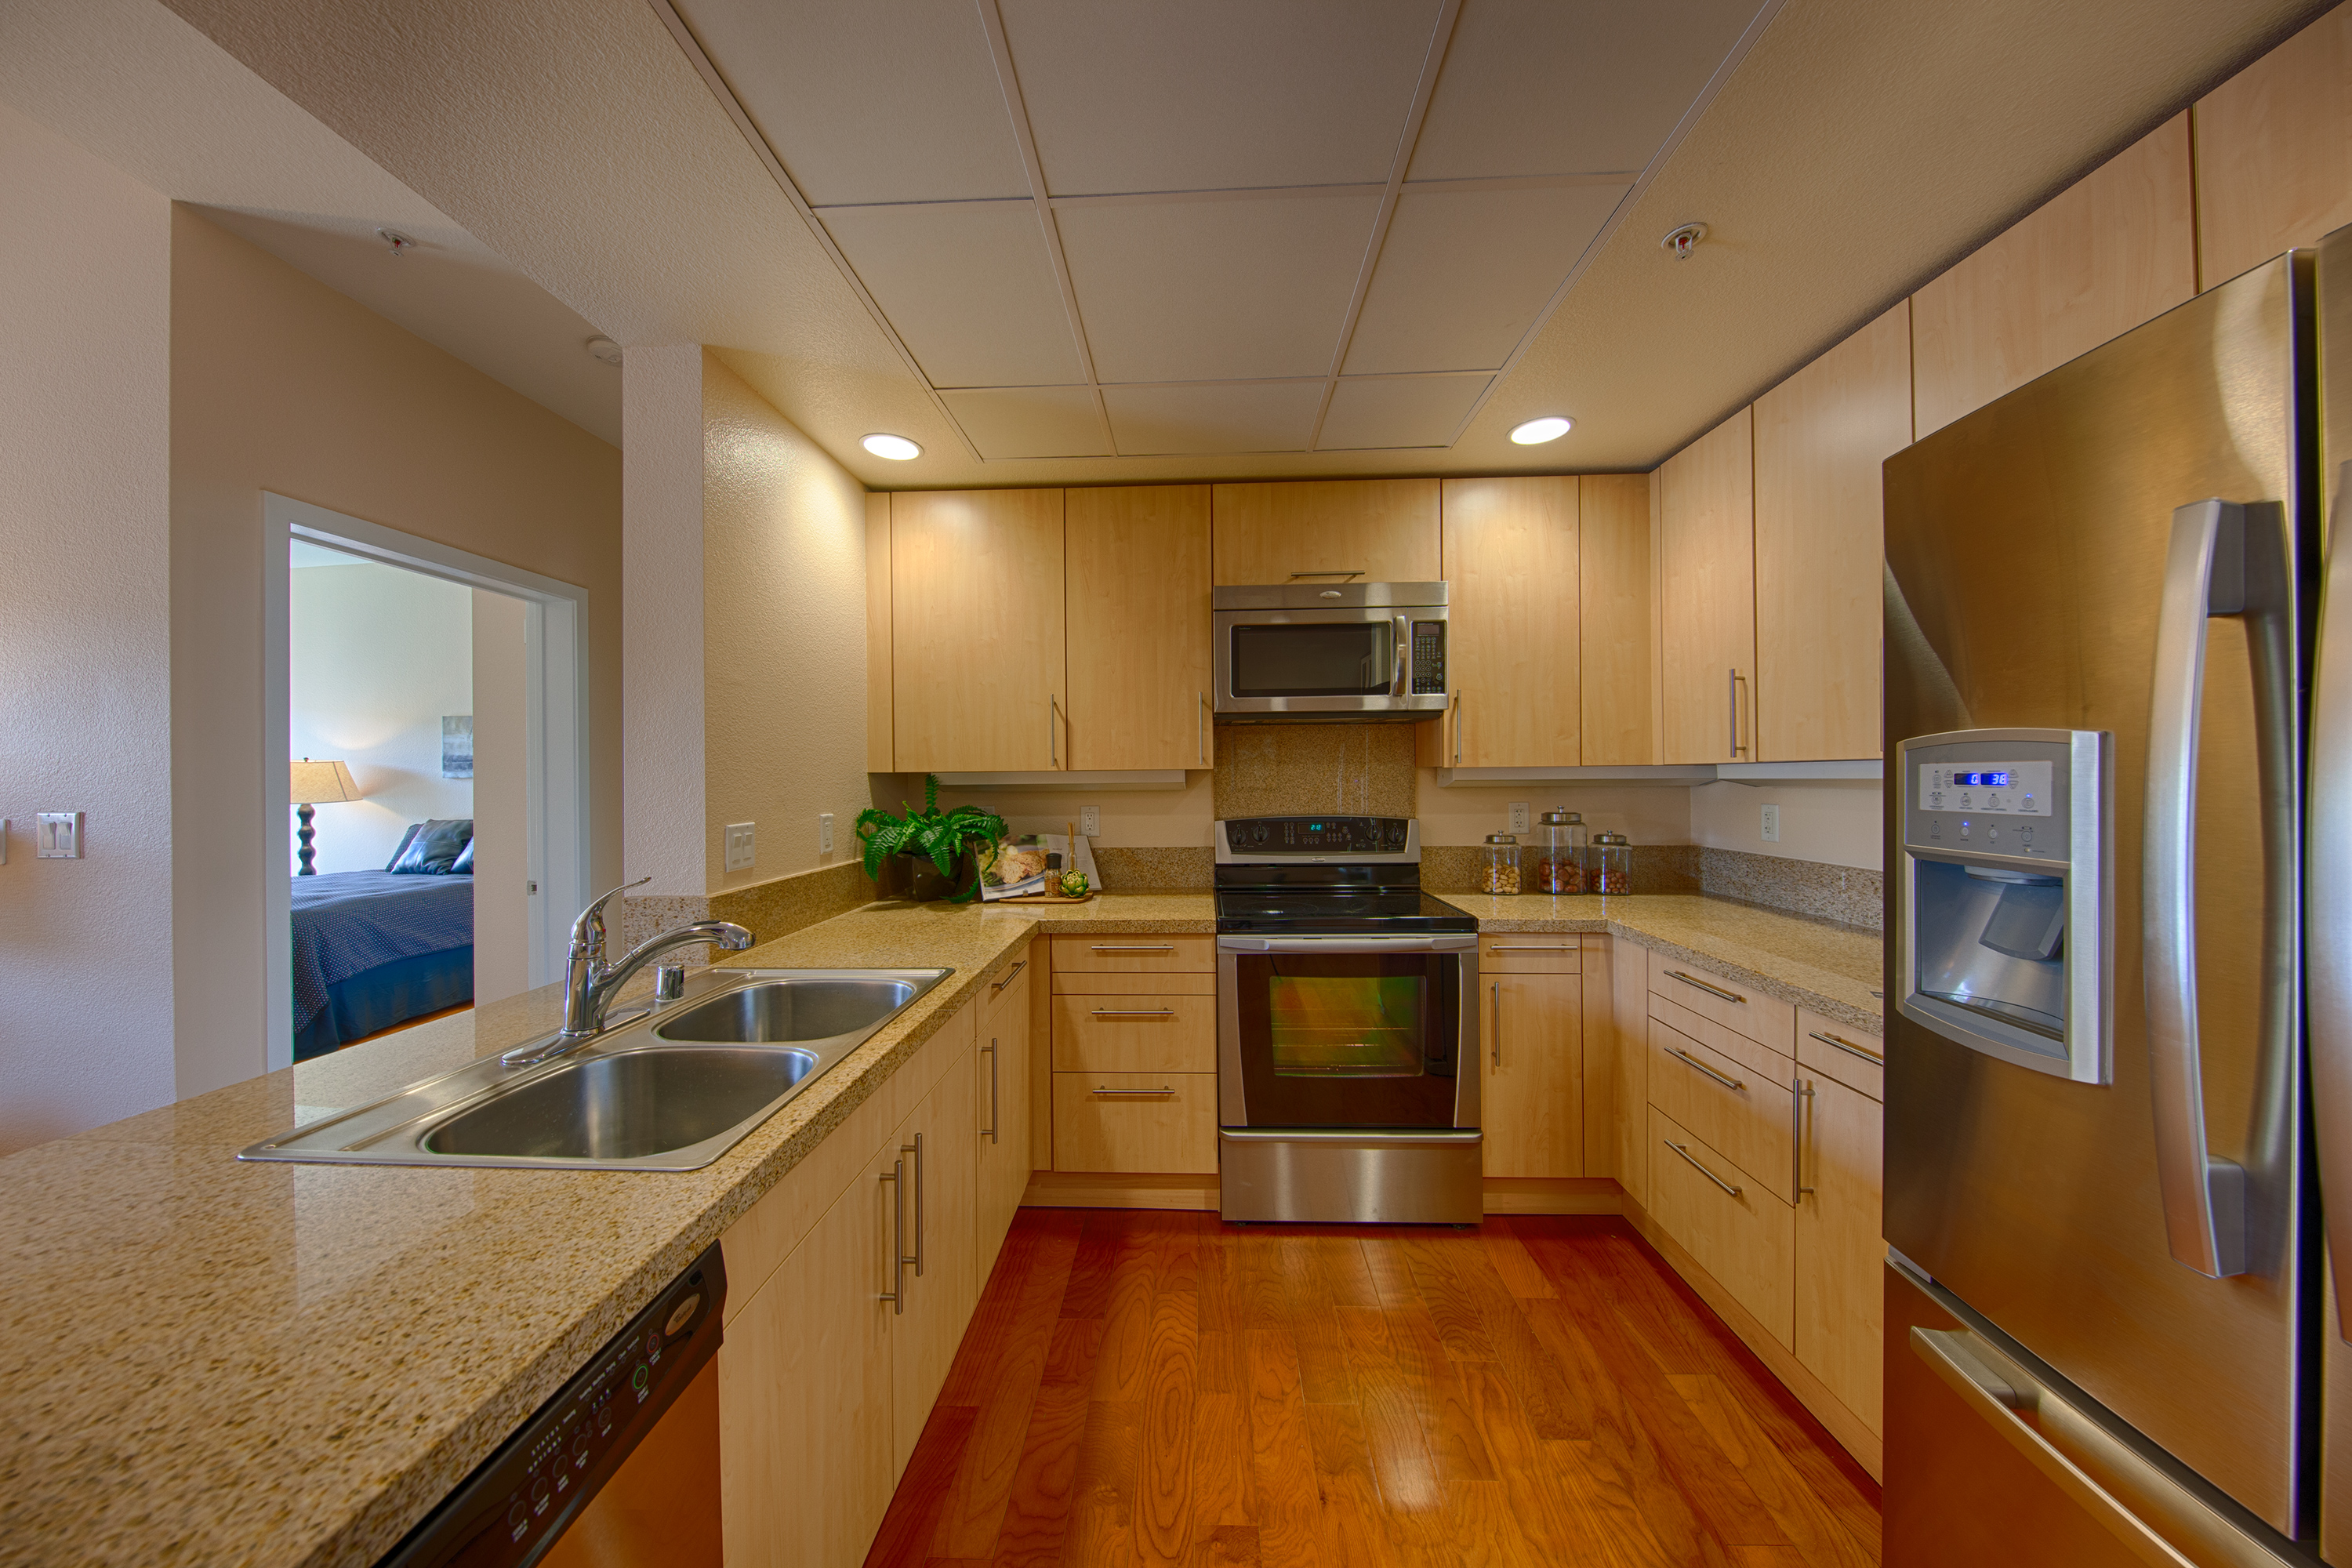 88 Bush St 4170, San Jose 95126 - Kitchen (A)